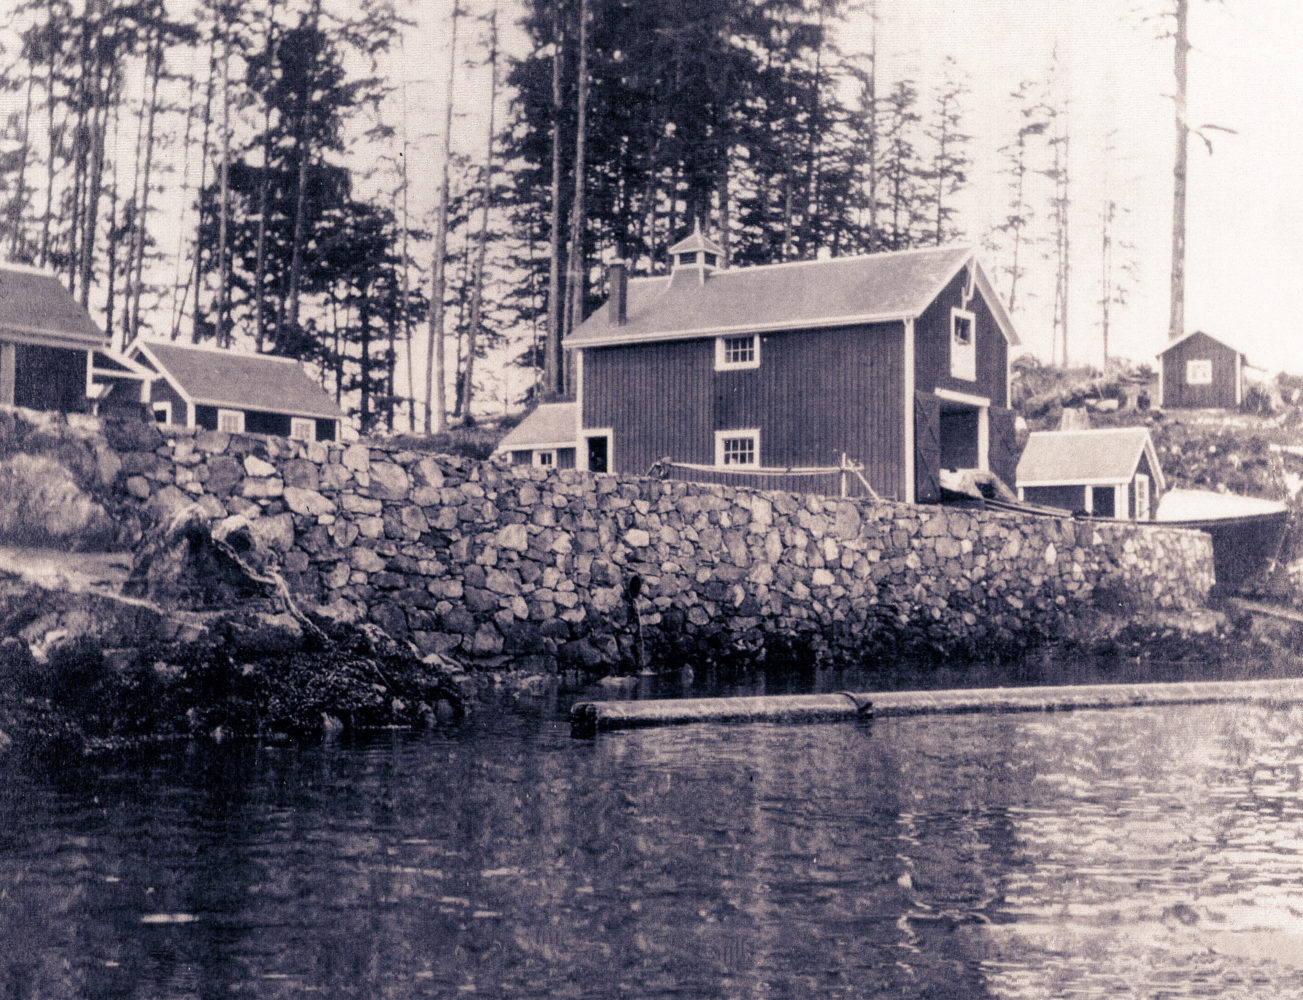 #18 - Bamfield Lifeboat Station, circa 1910